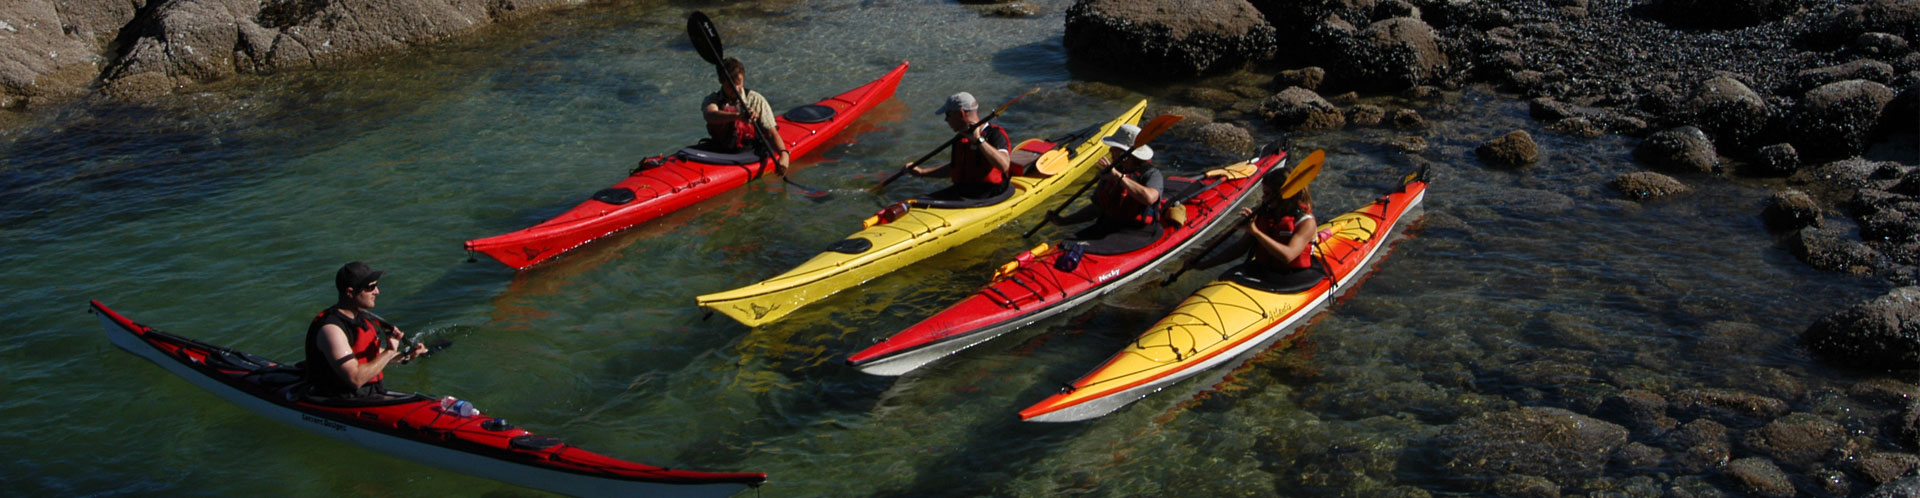 Private kayaking lessons in deep cove